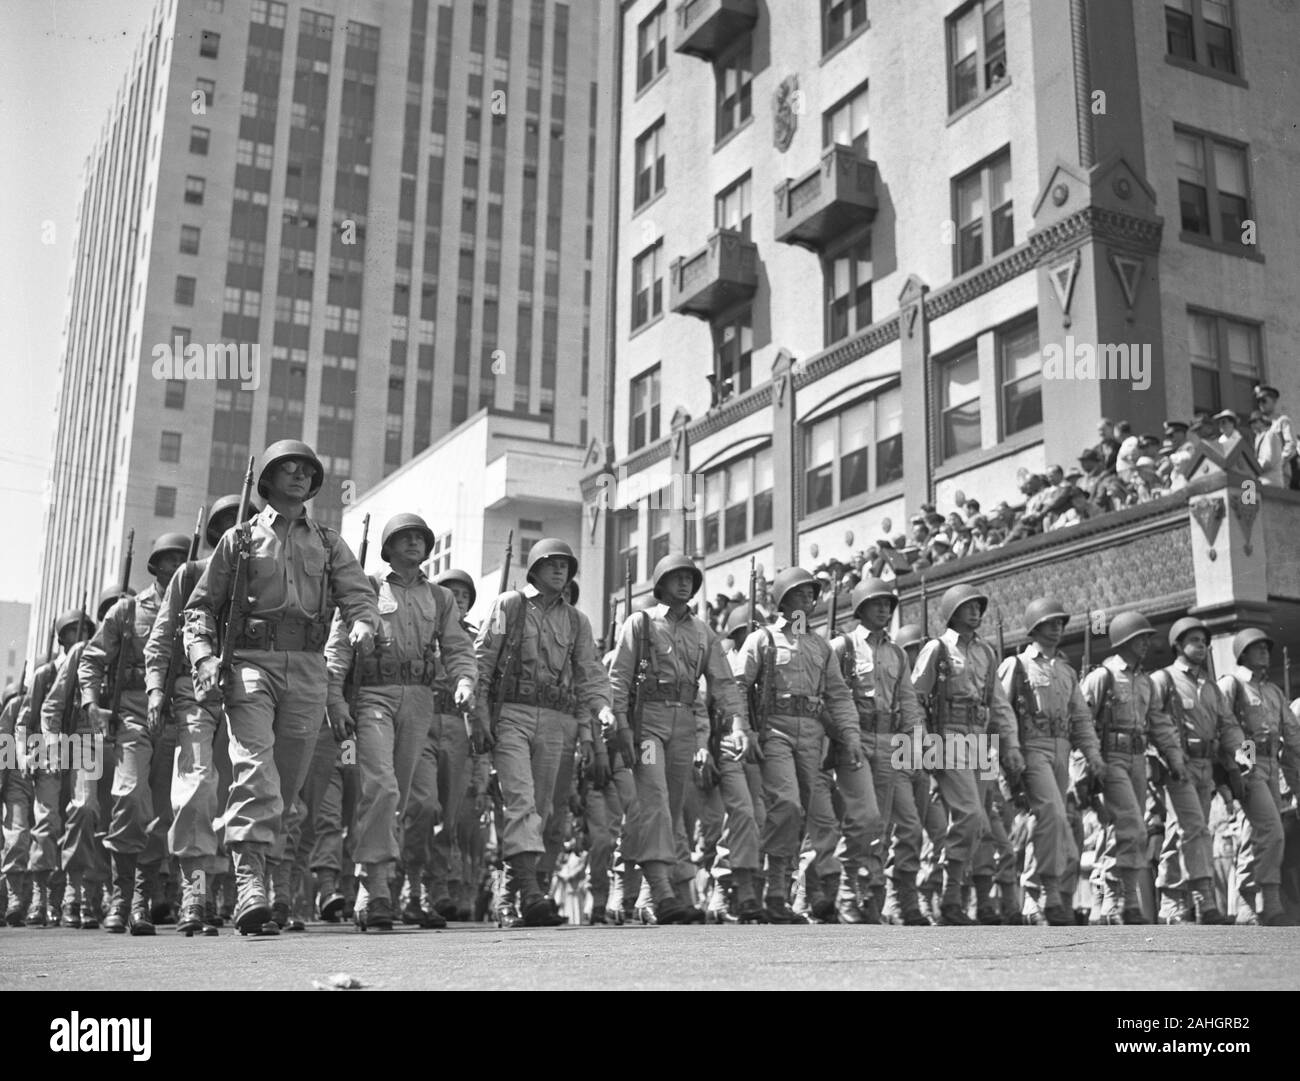 American troops preparing to ship out for World War II, 1942 Miami. The precise date is unknown, but probably late March 1942. Stock Photo